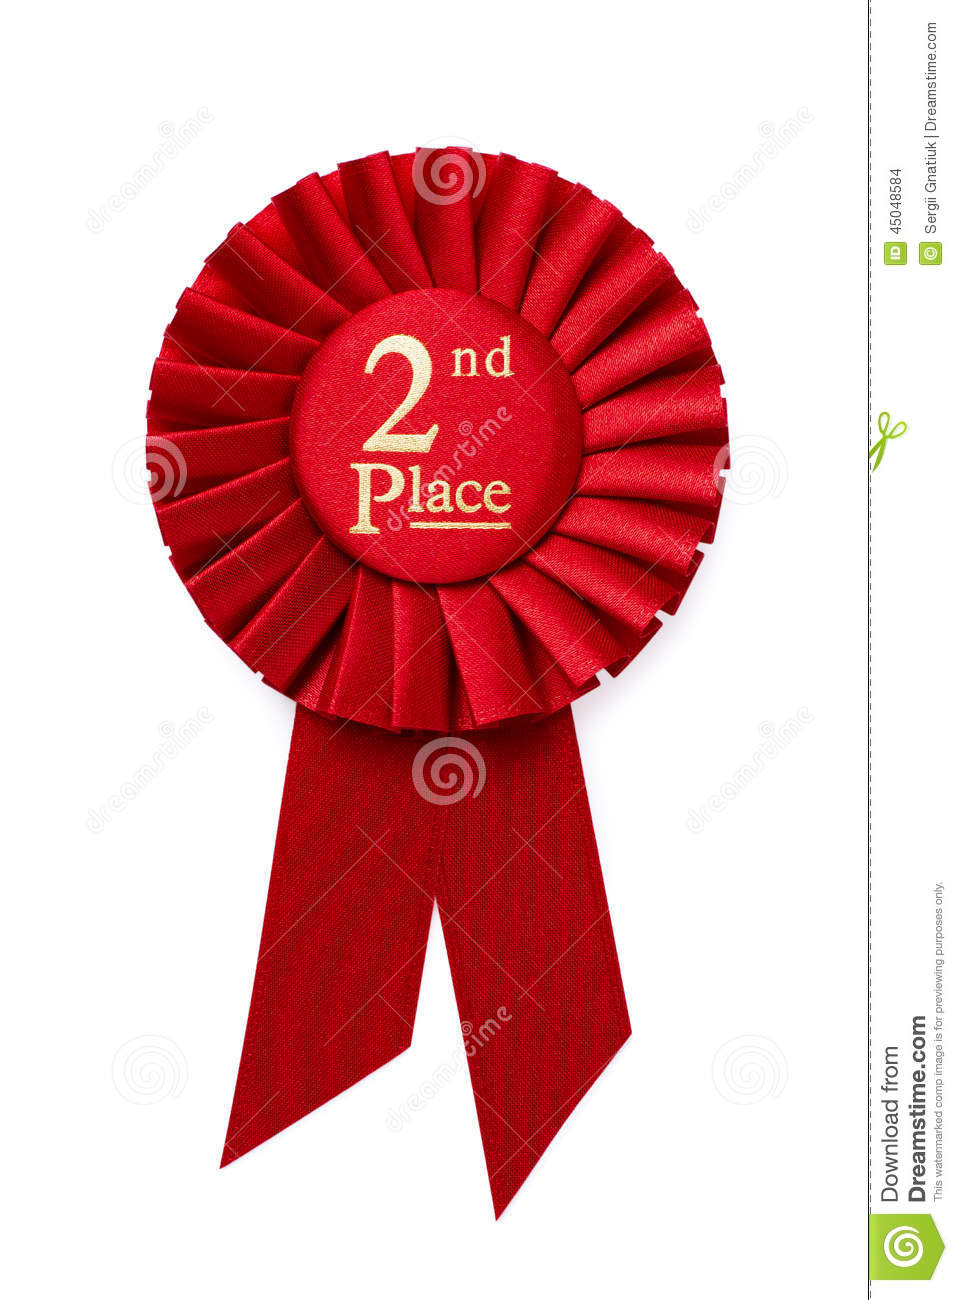 red 2nd place ribbon rosette stock photo image of winner textile